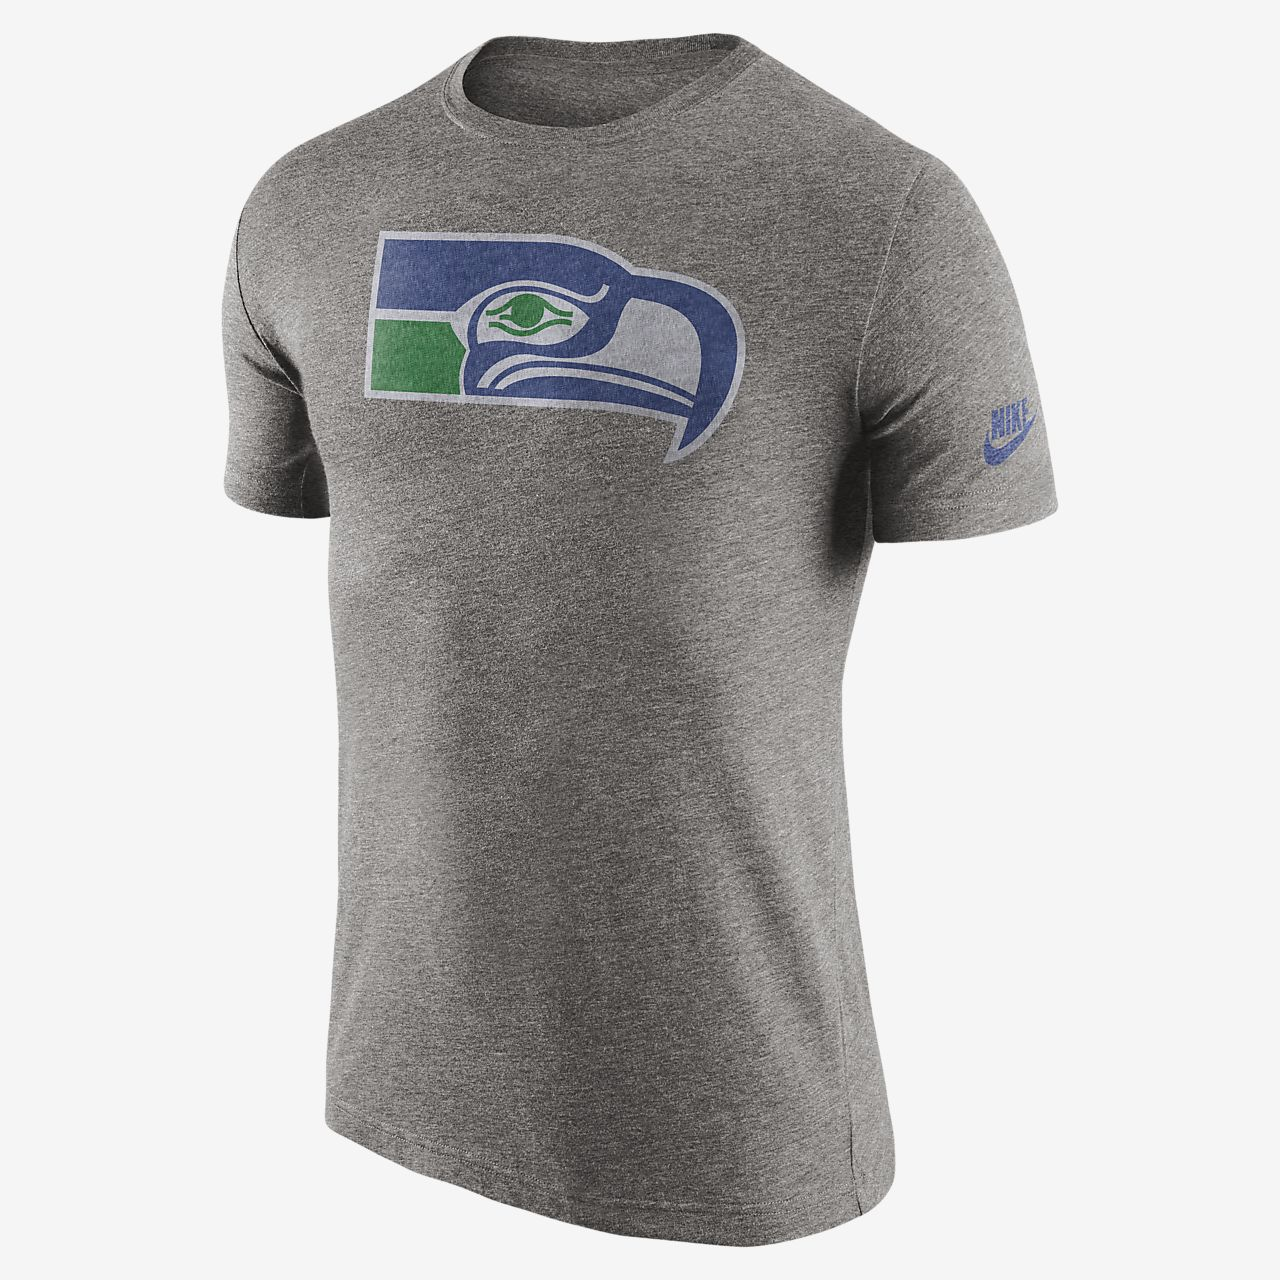 0168a3cc Nike Historic Logo (NFL Seahawks) Men's T-Shirt